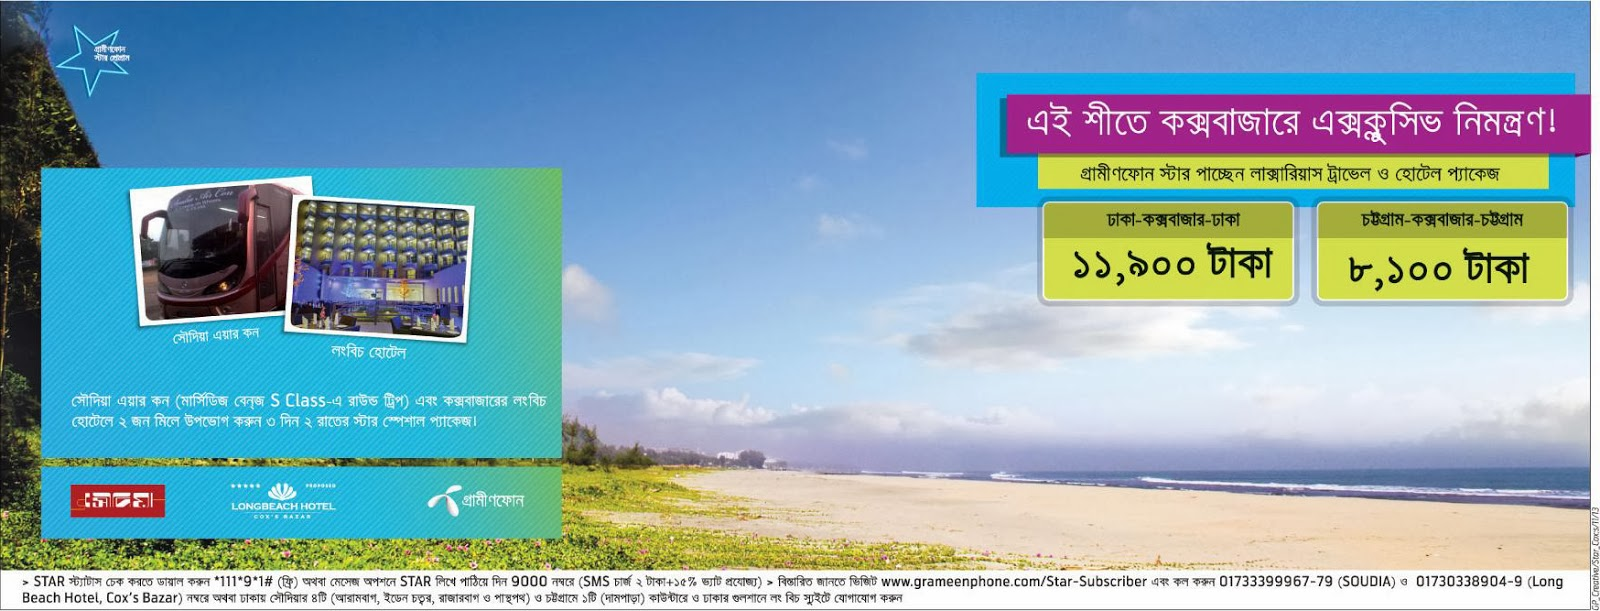 telenor its operation as grameenphone